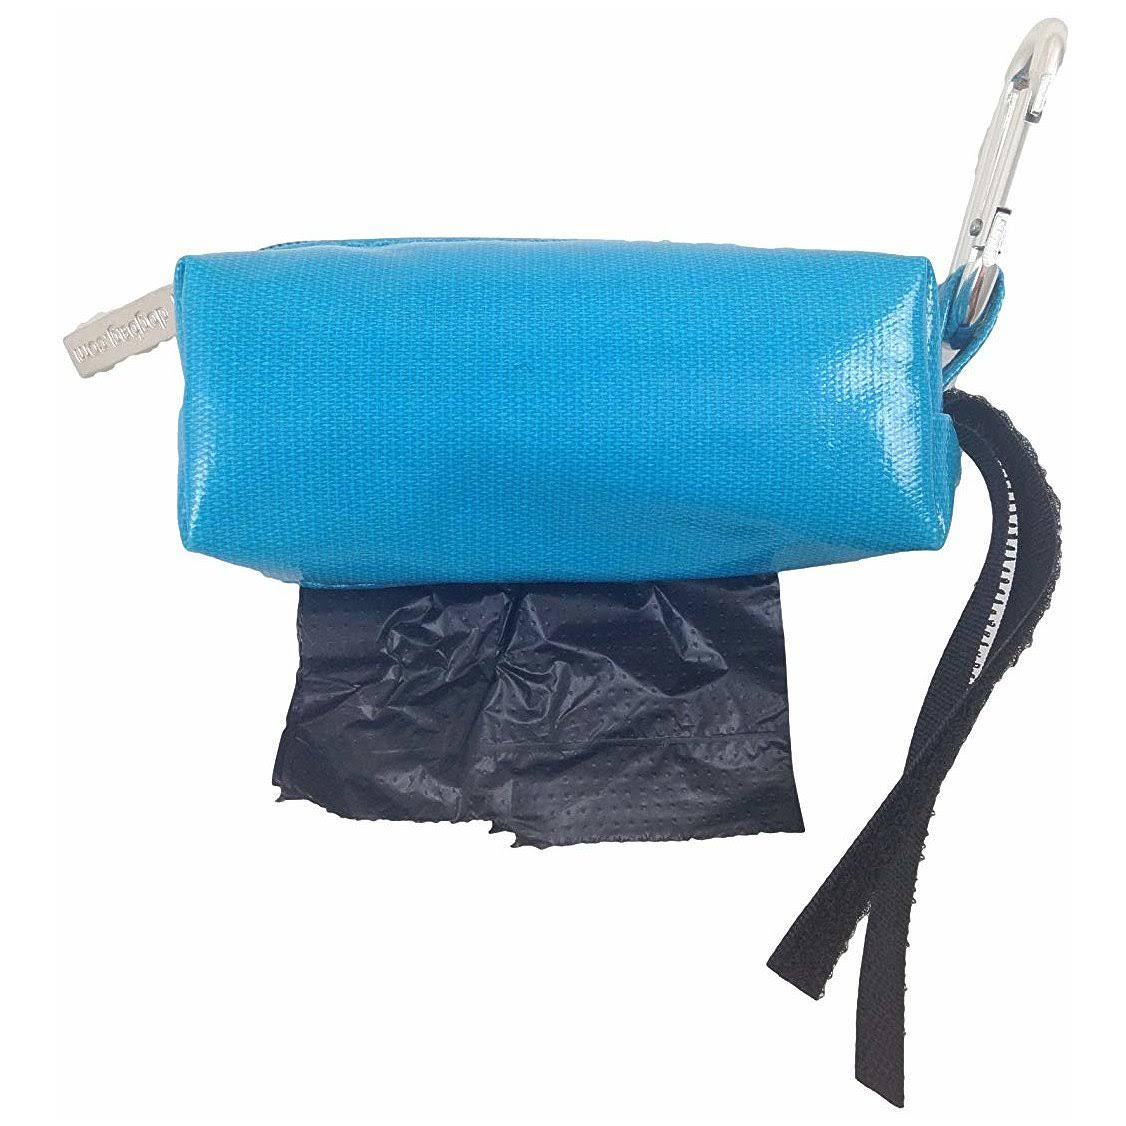 Doggie Walk Bags Duffel Bags for Dogs - Unscented, Solid Turquoise, Black